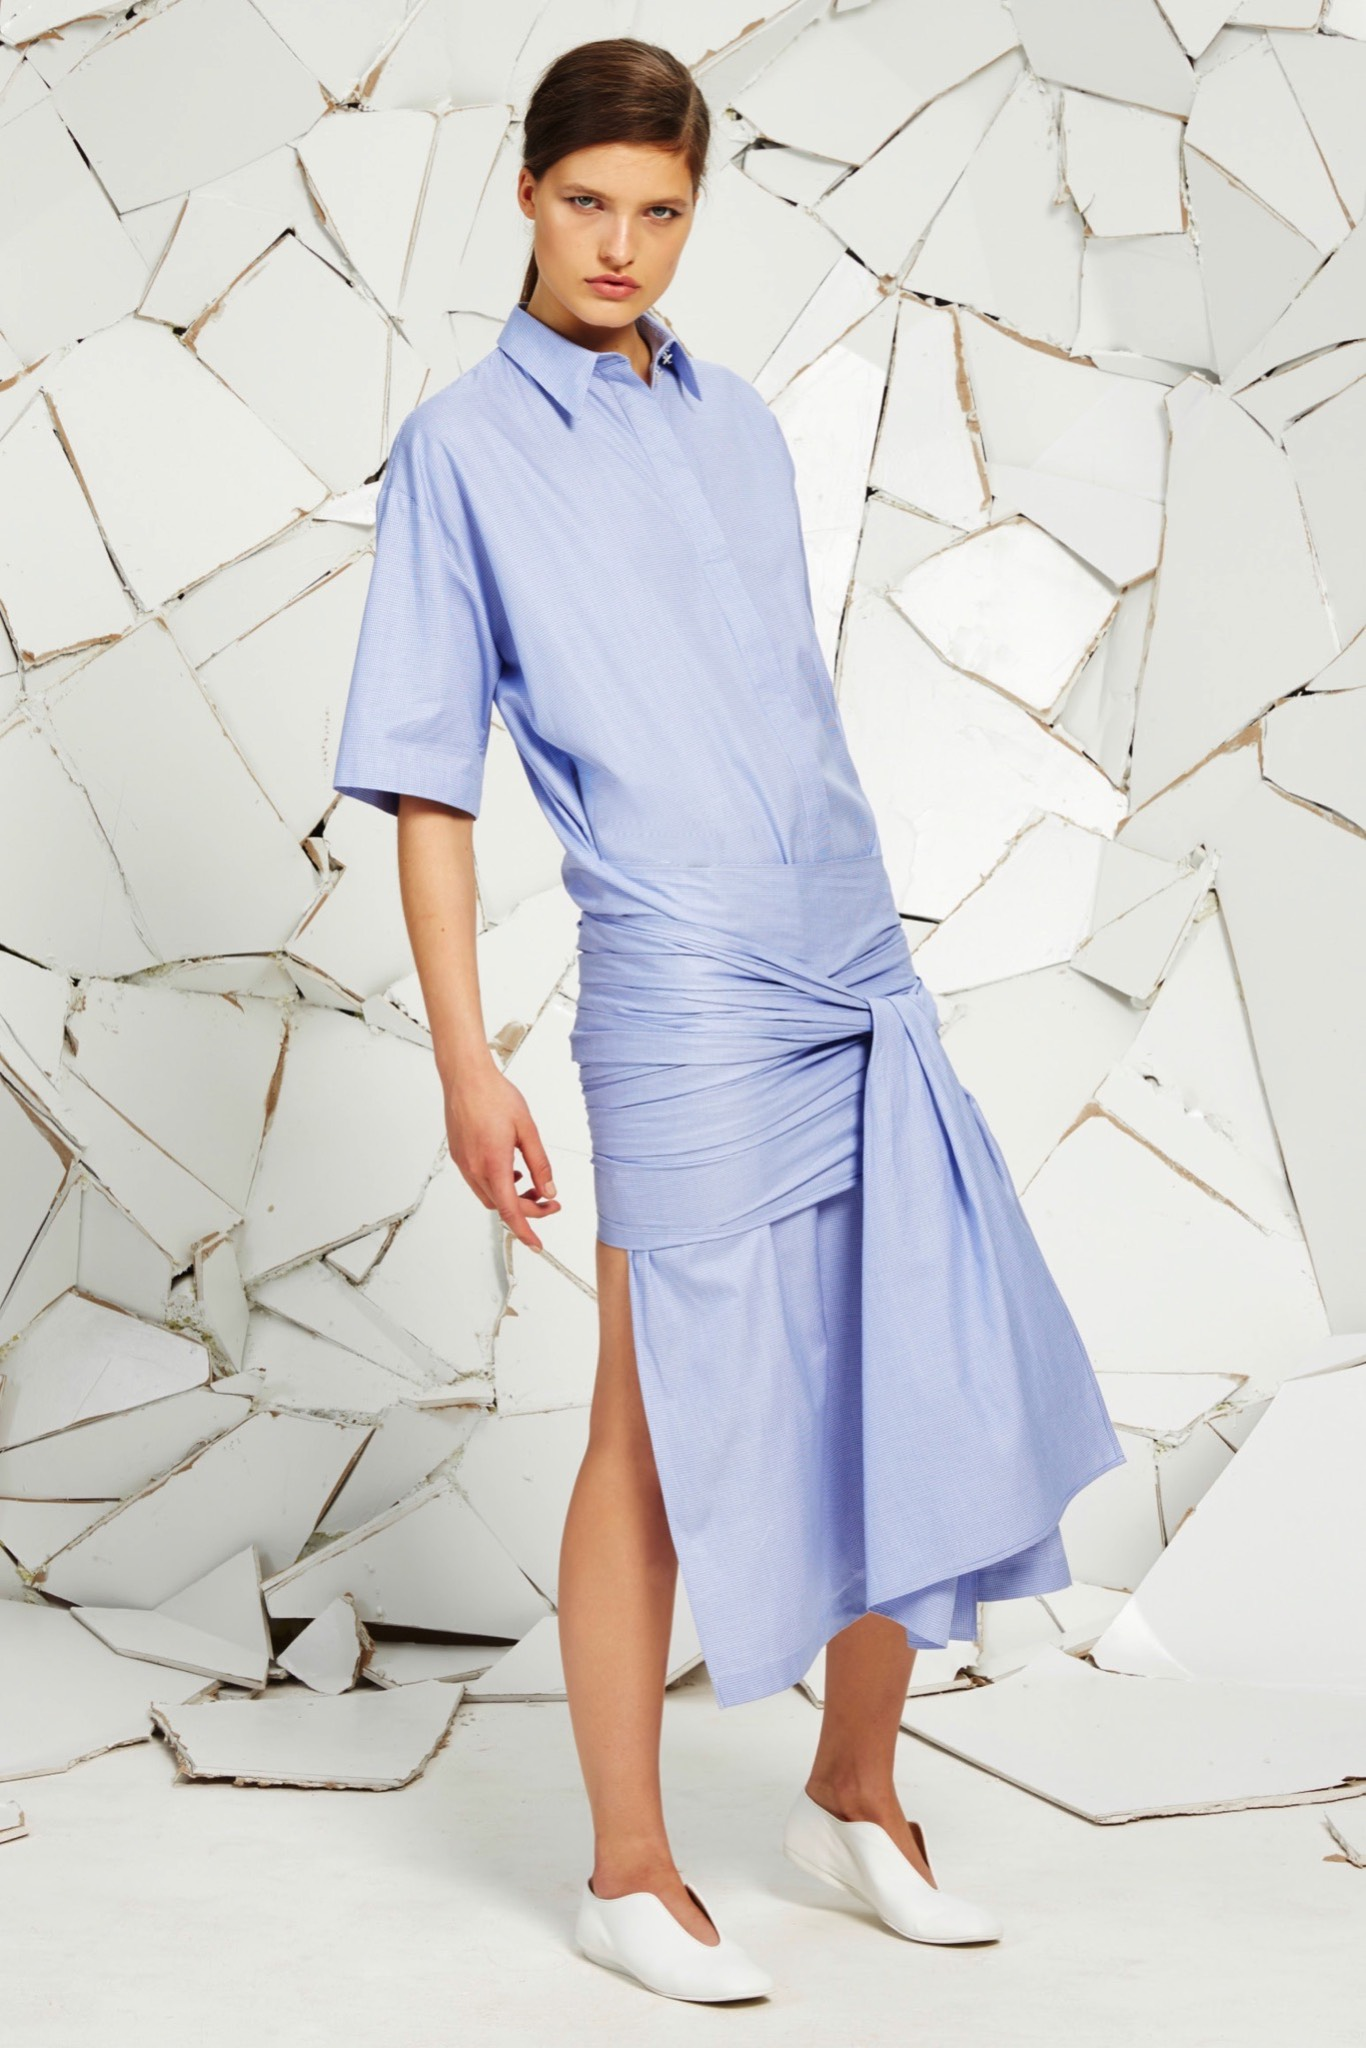 stella-mccartney-resort-2016-the-impression-01